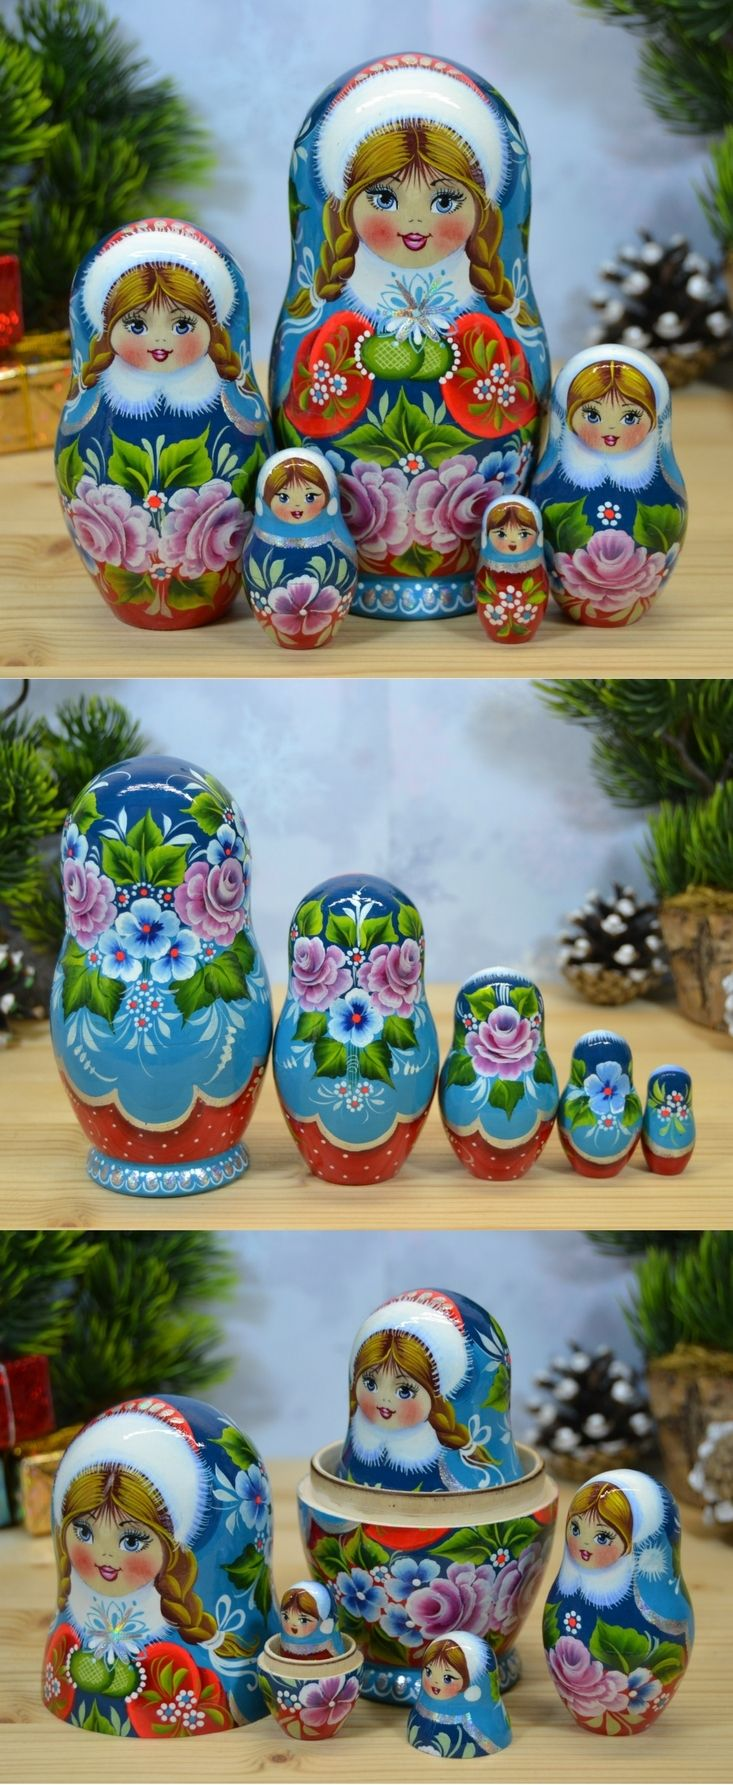 Russian babushka doll in blue  and red winter attire, hand painted by artist Valentina Partanen. Find more lovely nesting dolls at: www.bestrussiandolls.etsy.com